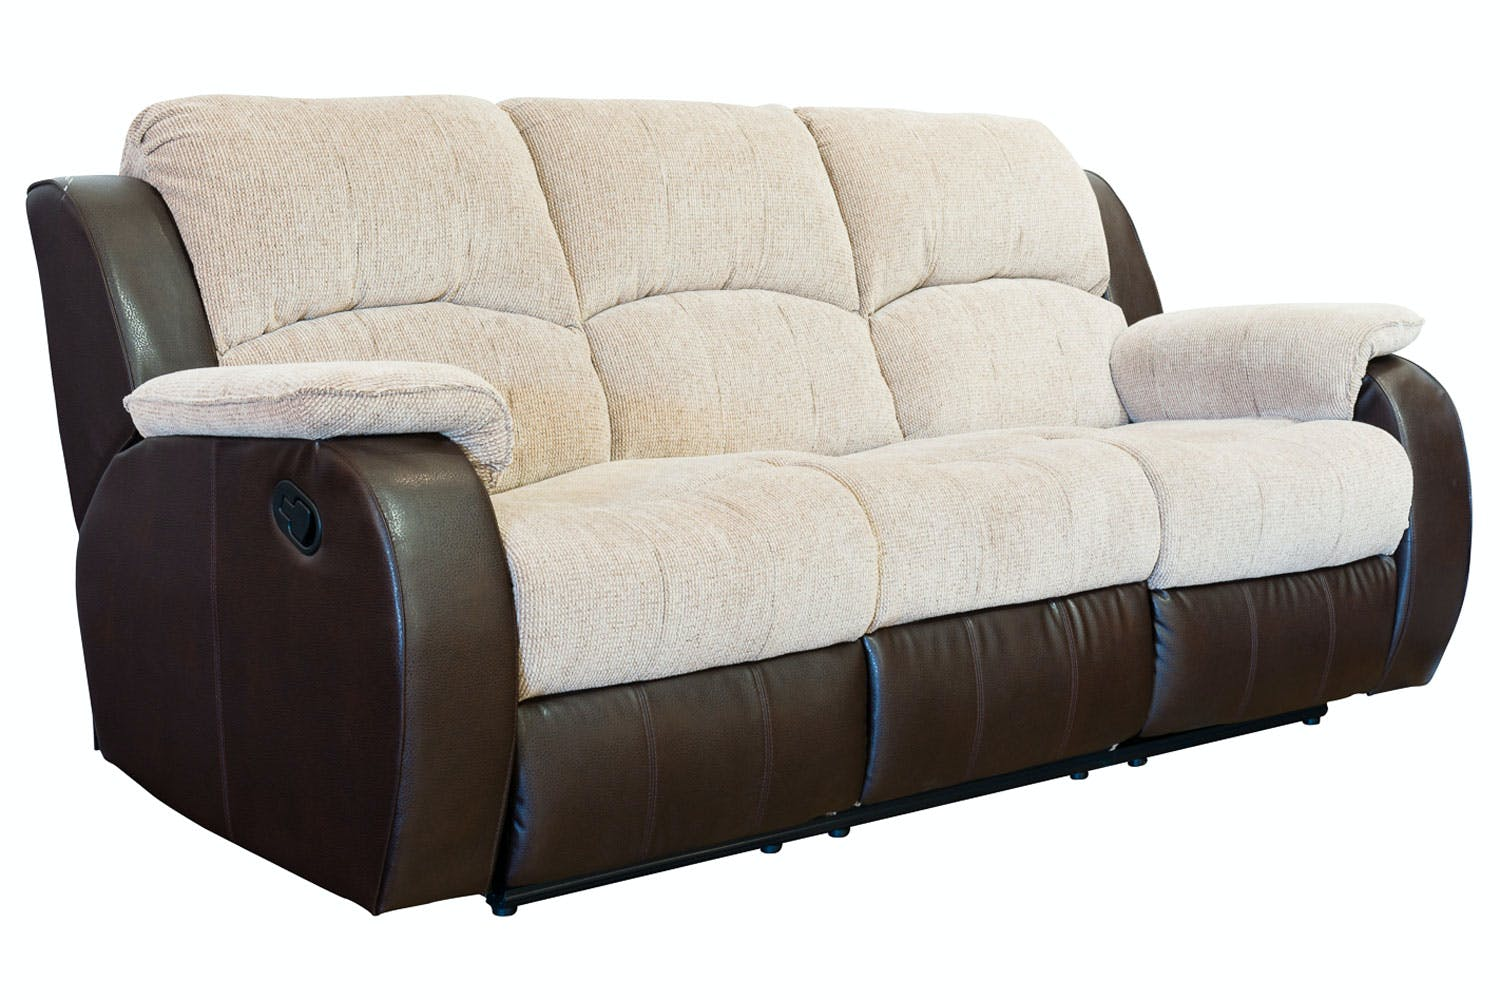 3 seat recliner sofa lovely 3 seater recliner sofa 44 in contemporary inspiration thesofa. Black Bedroom Furniture Sets. Home Design Ideas